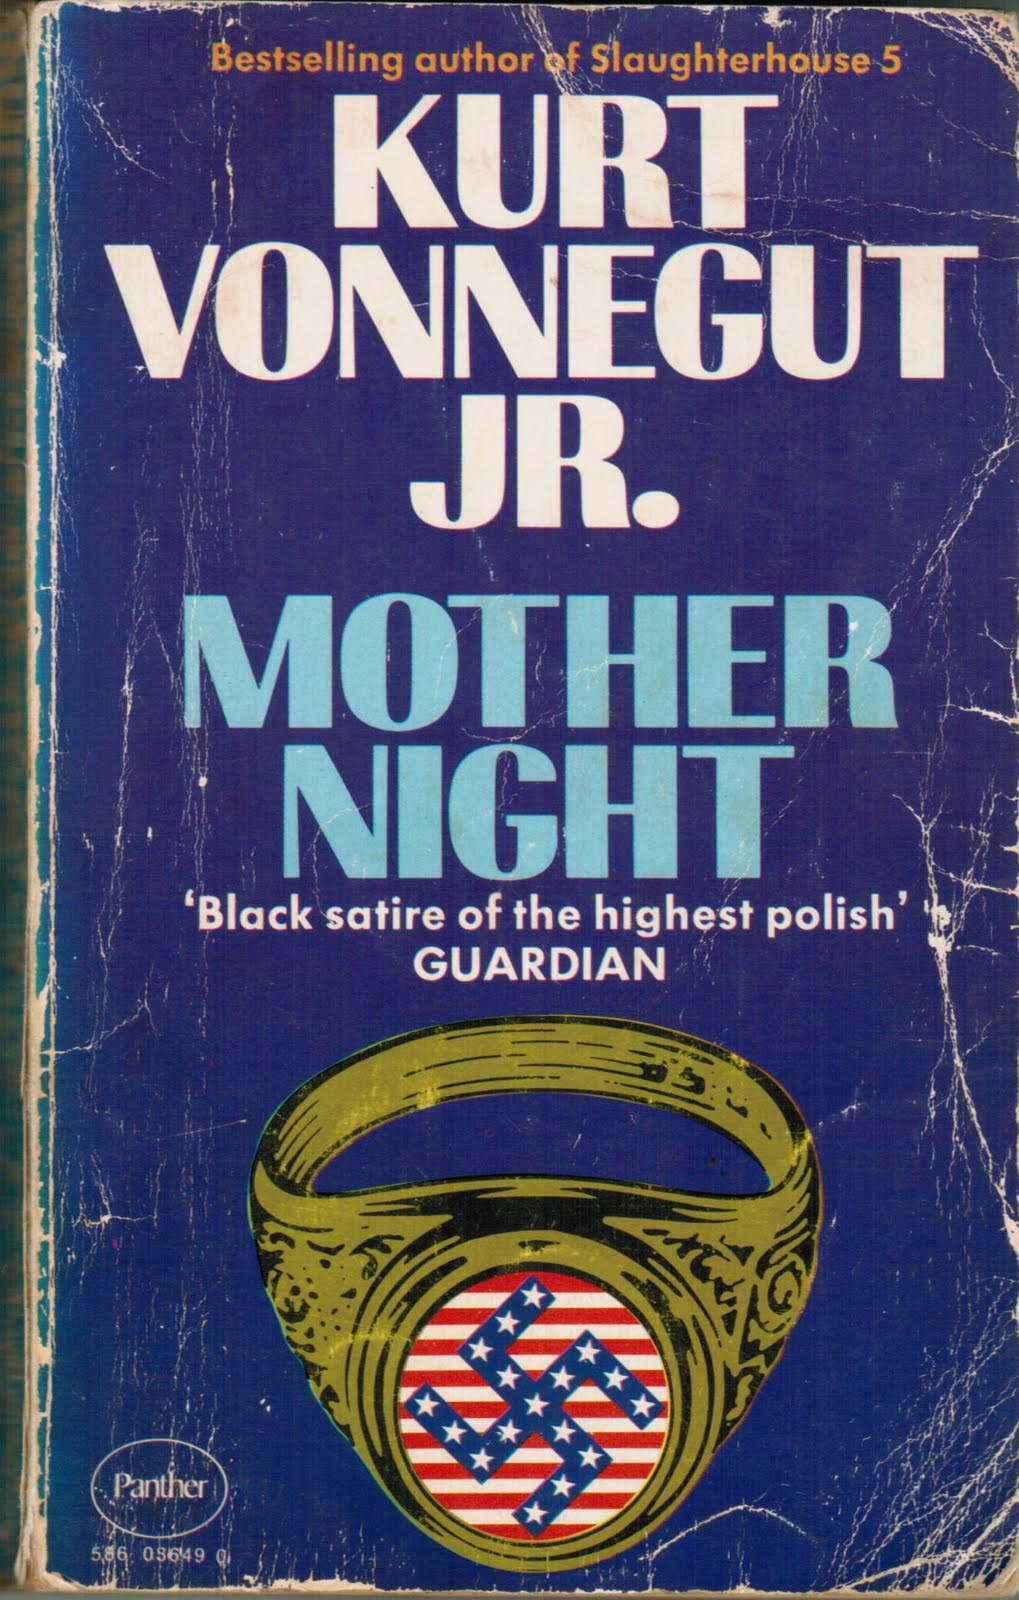 societys interpretation of good and evil in the novel mother night by kurt vonnegut